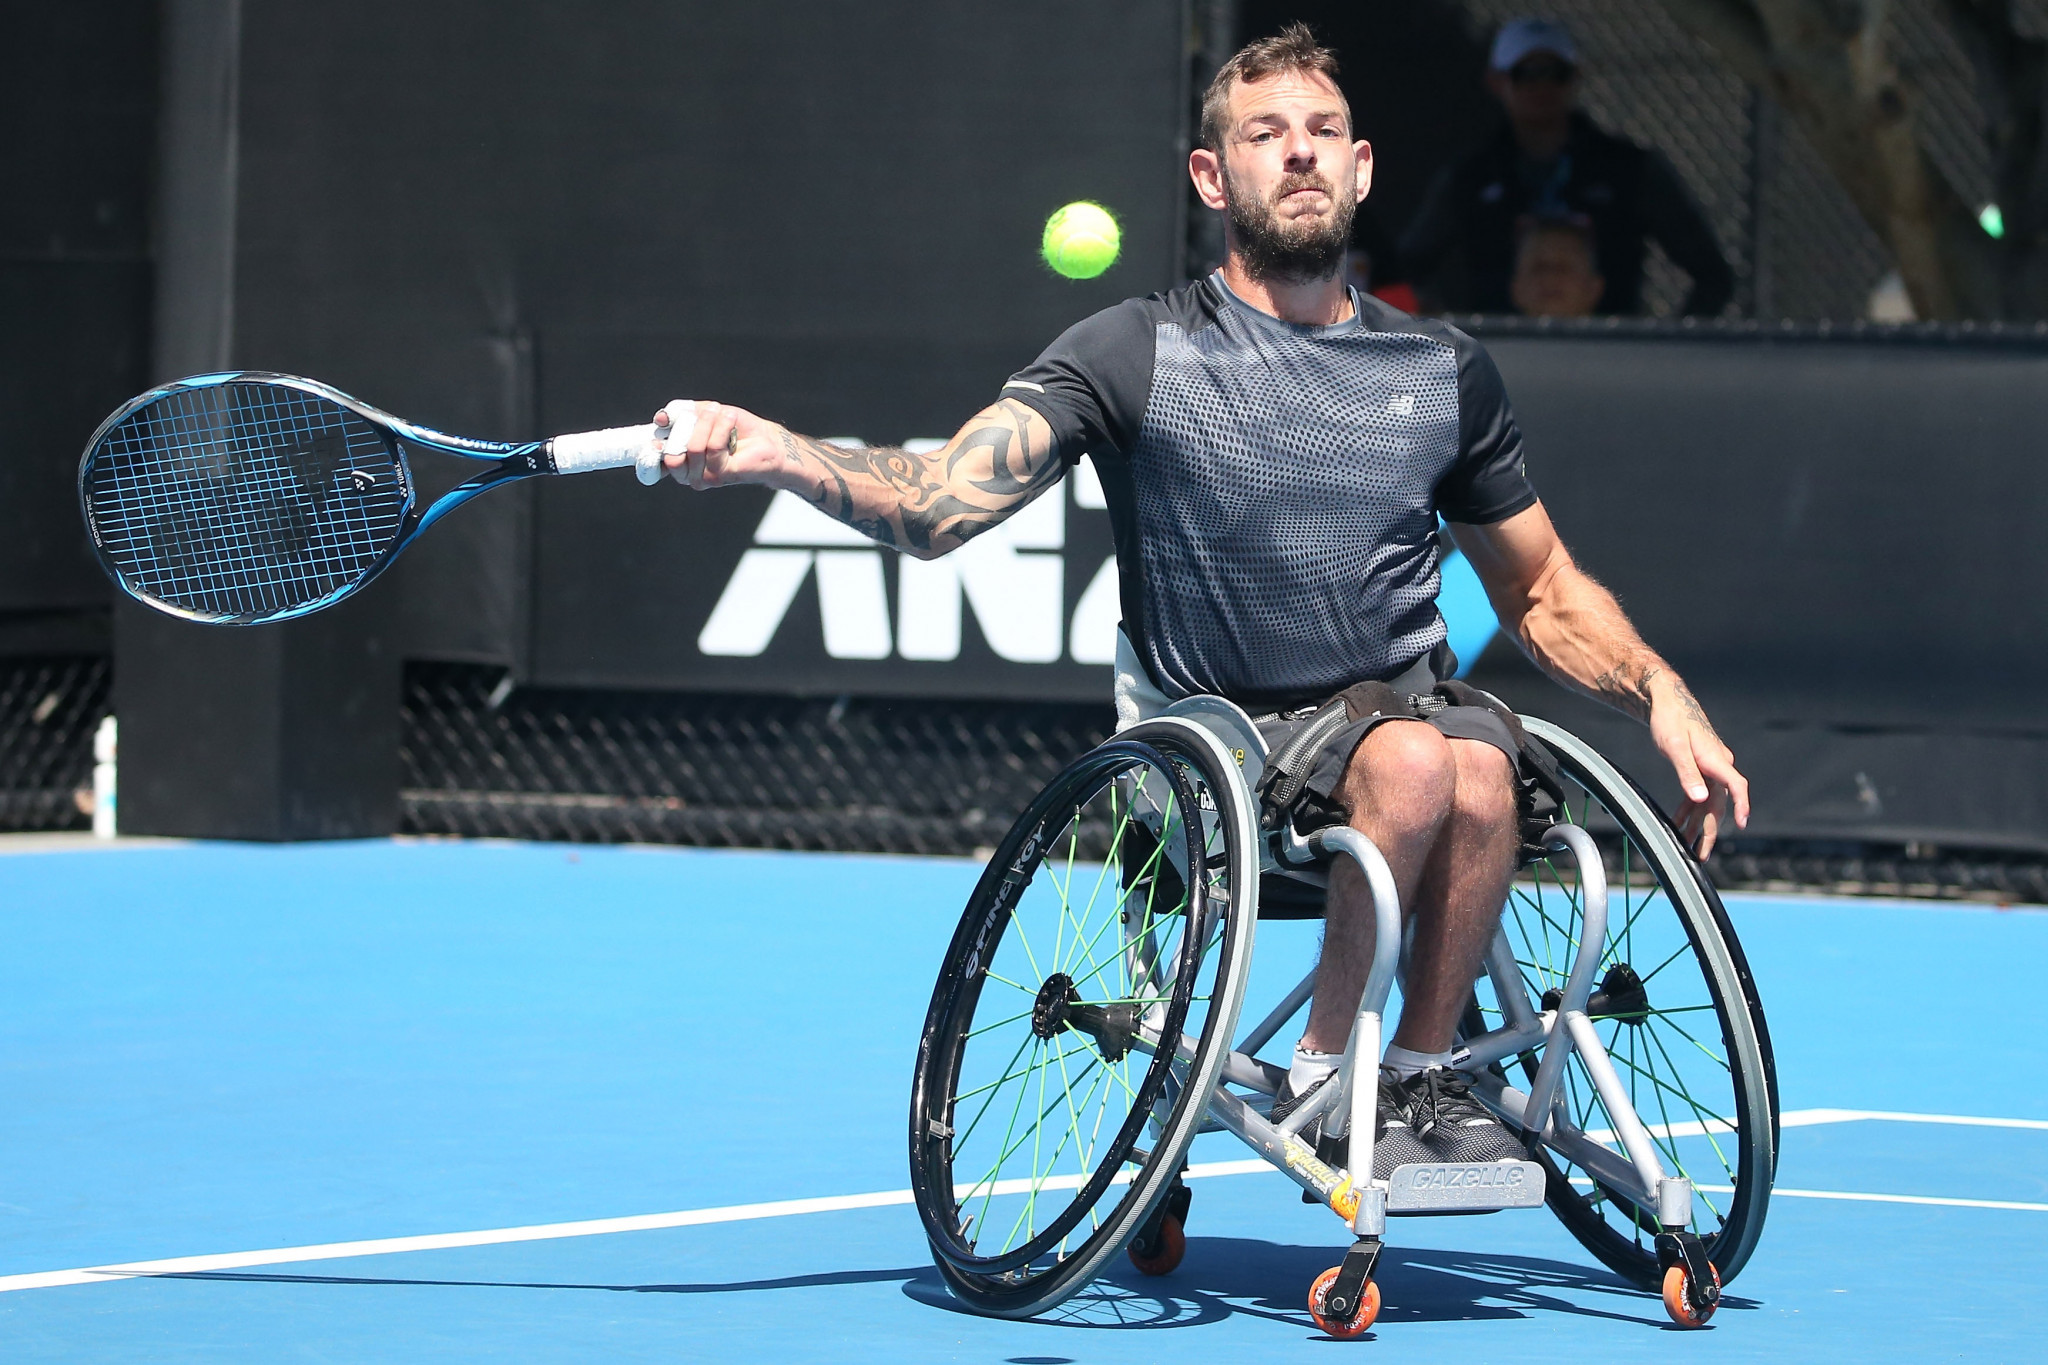 Australia's Heath Davidson is through to the quad singles final at the US Open United States Tennis Association Wheelchair Championships in St Louis ©Getty Images